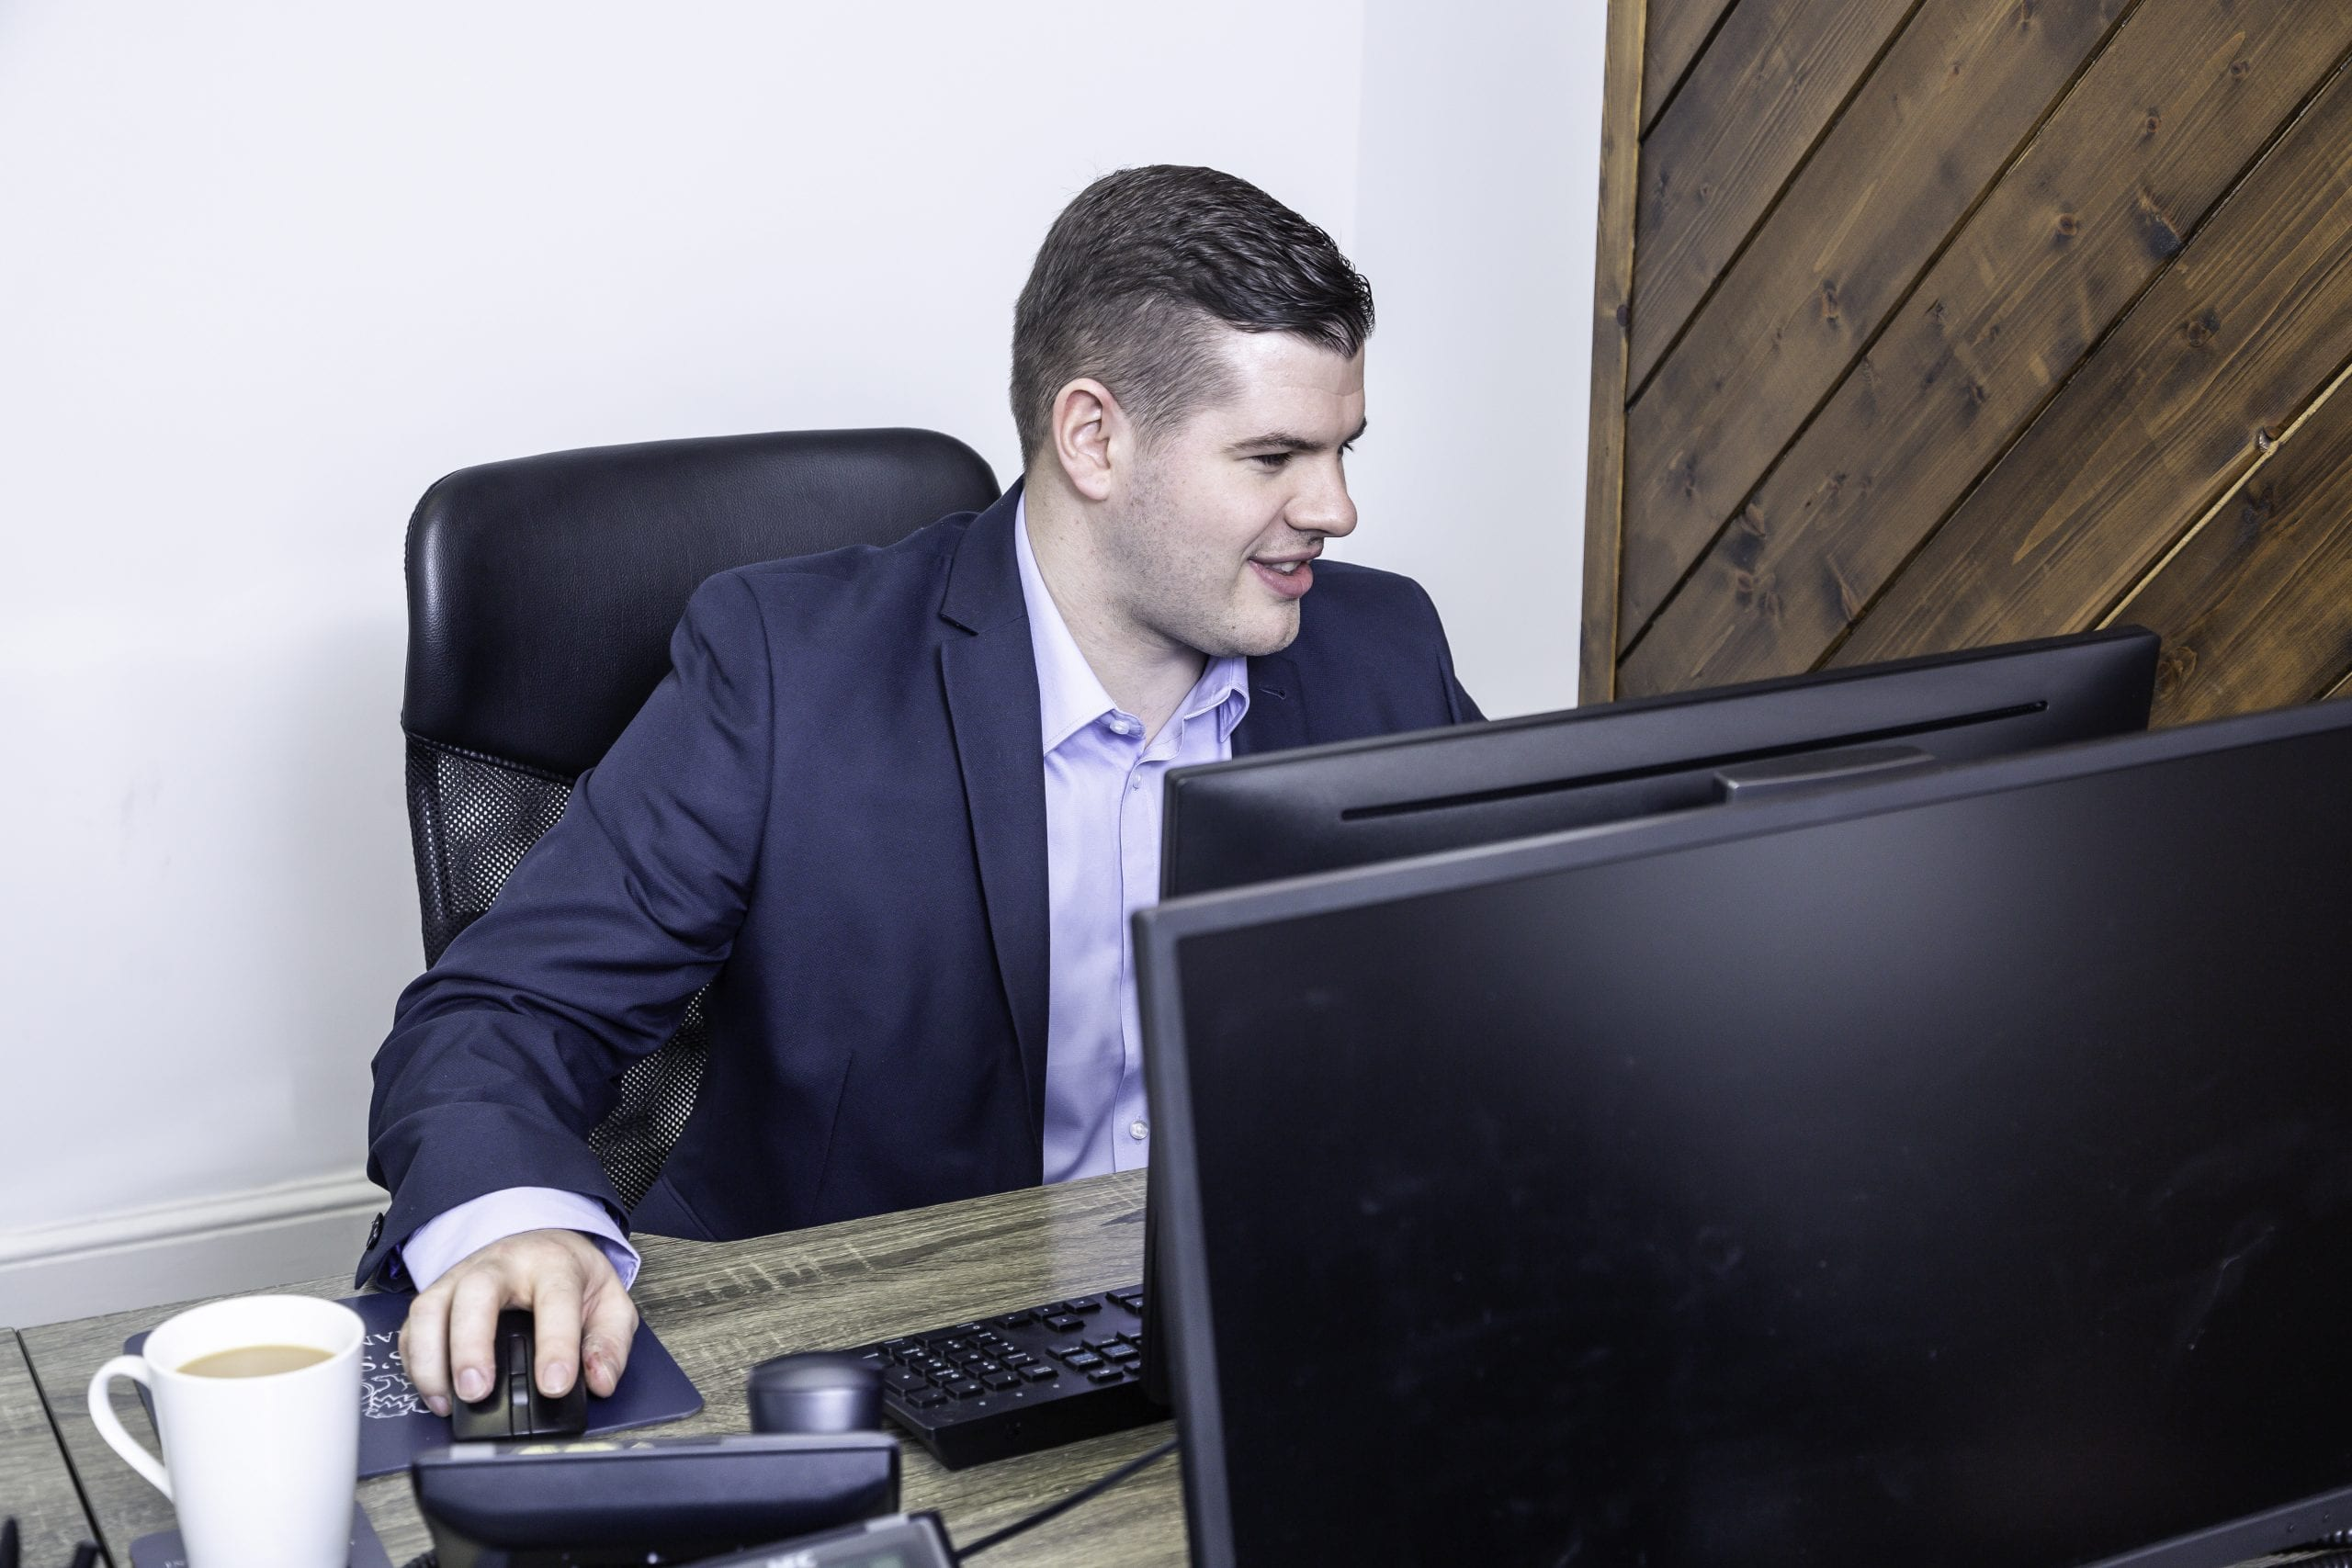 Man working at the front of the computer